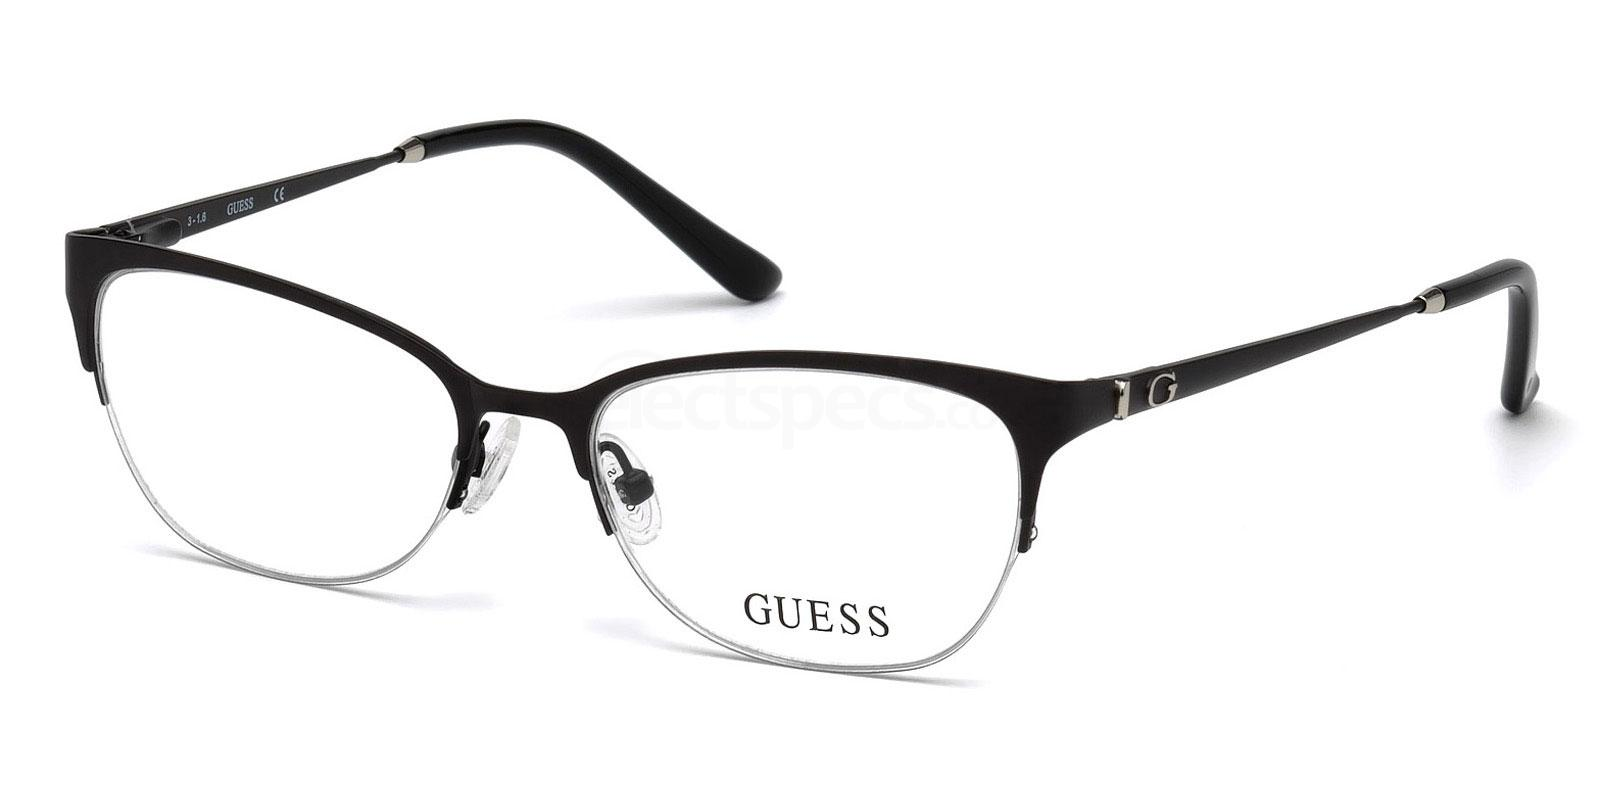 005 GU2584 Glasses, Guess